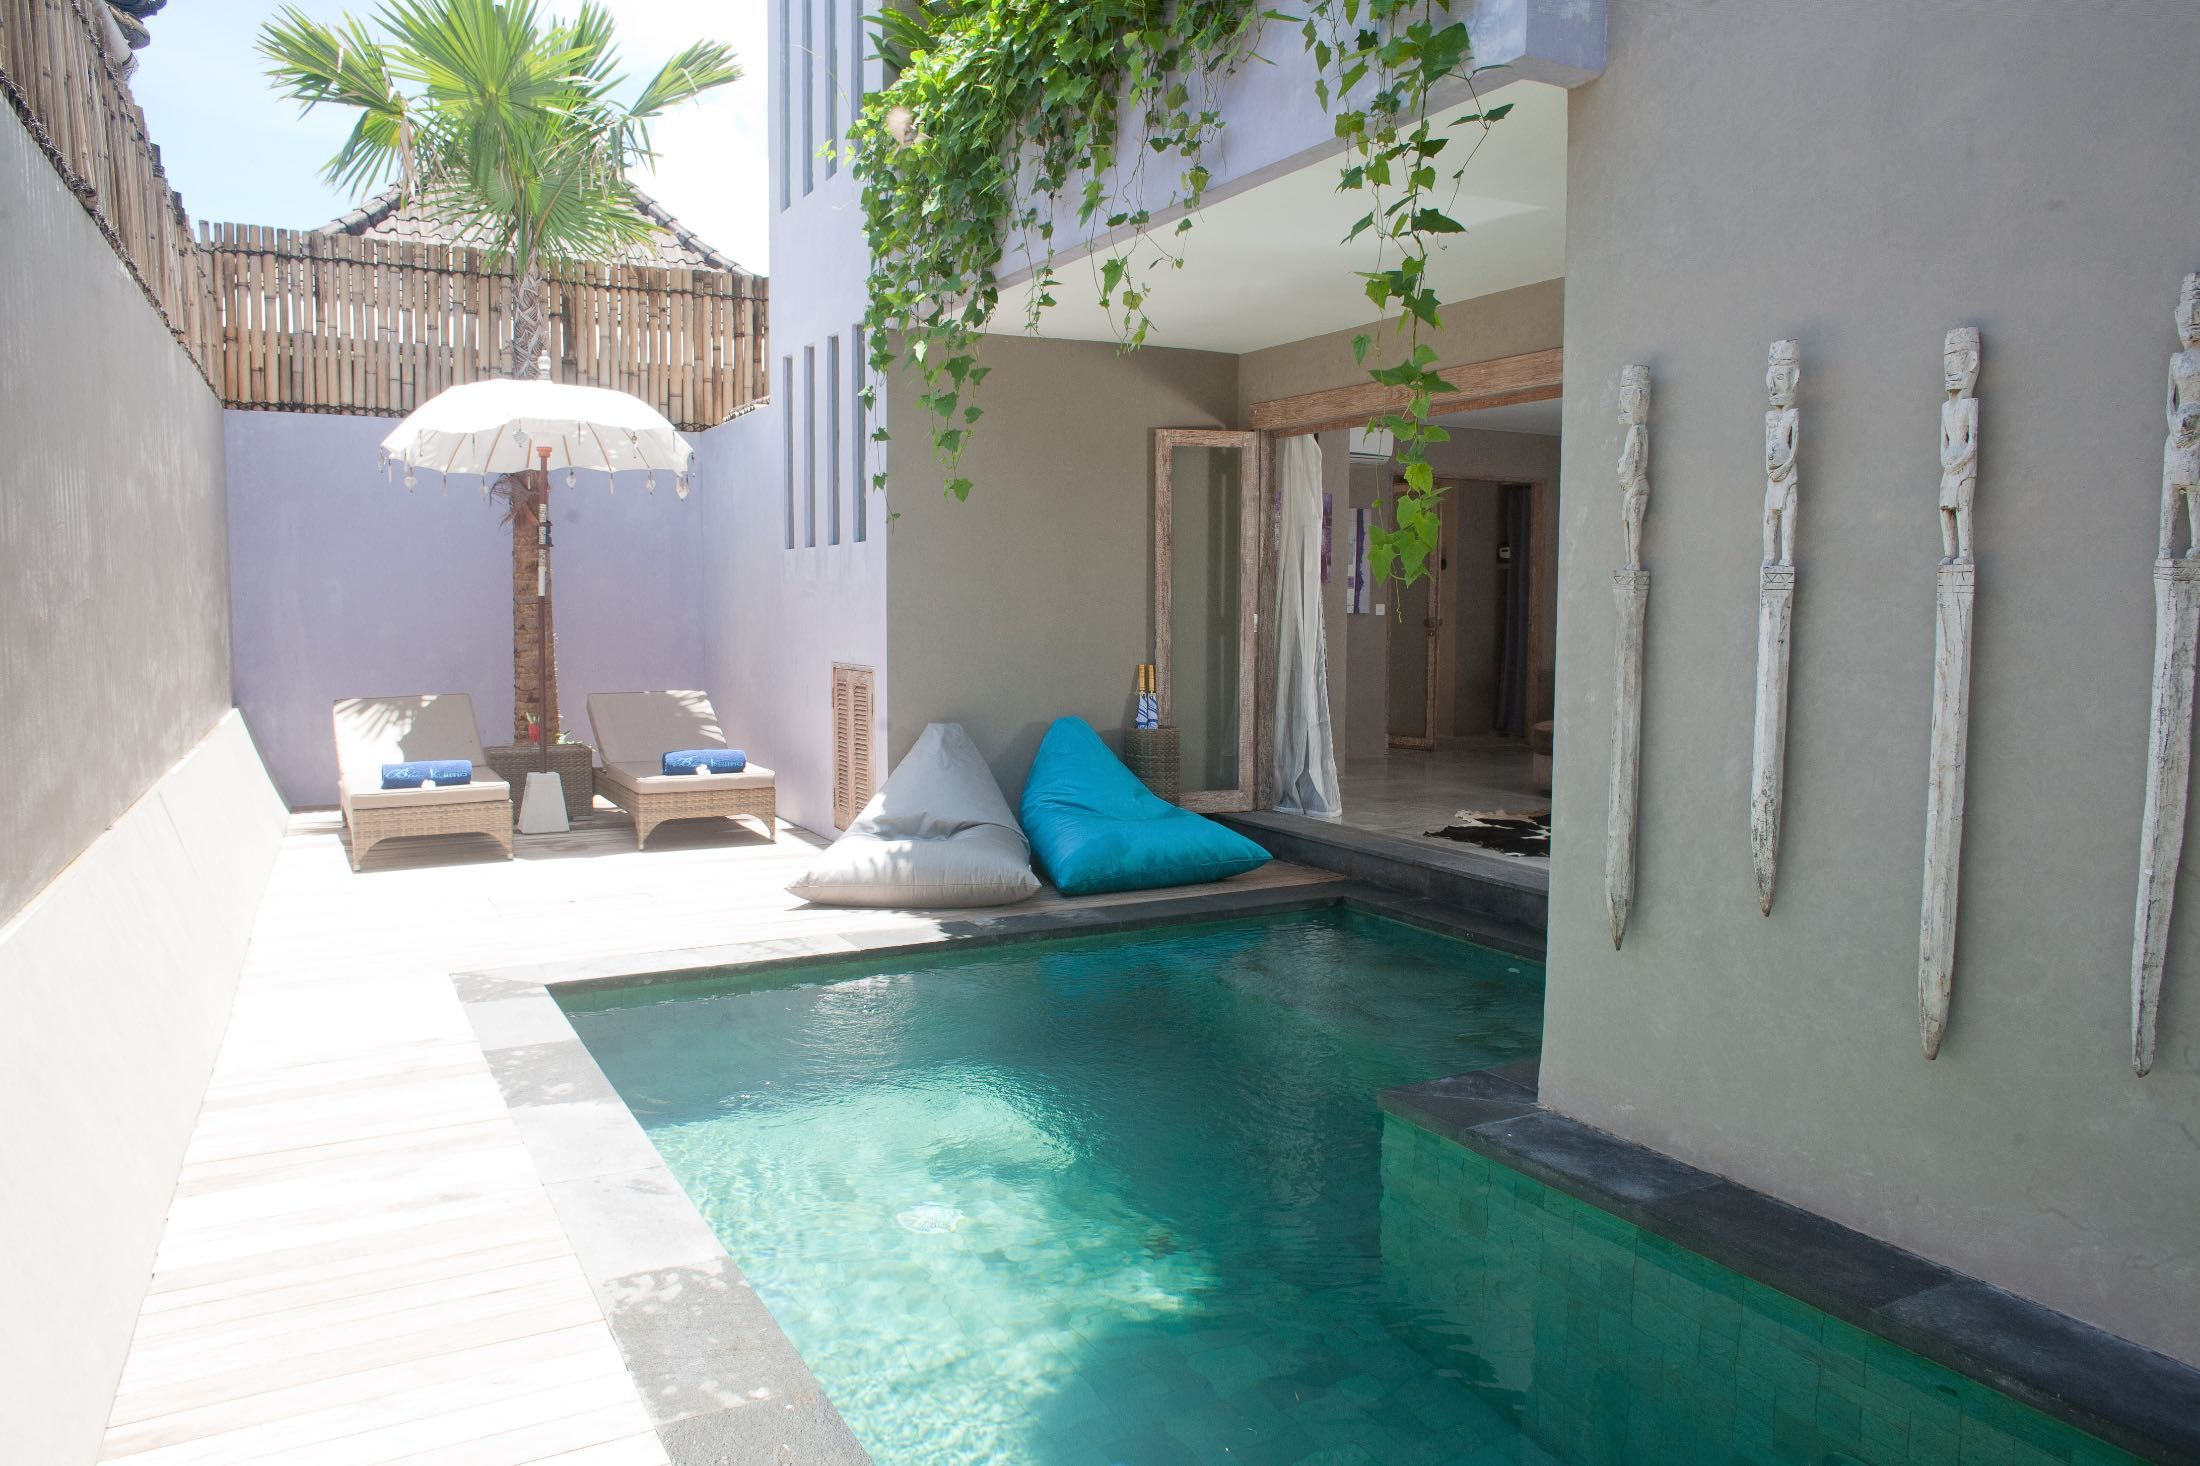 2 bedrooms villa in seminyak bali hotel private pool Bedroom swimming pool design